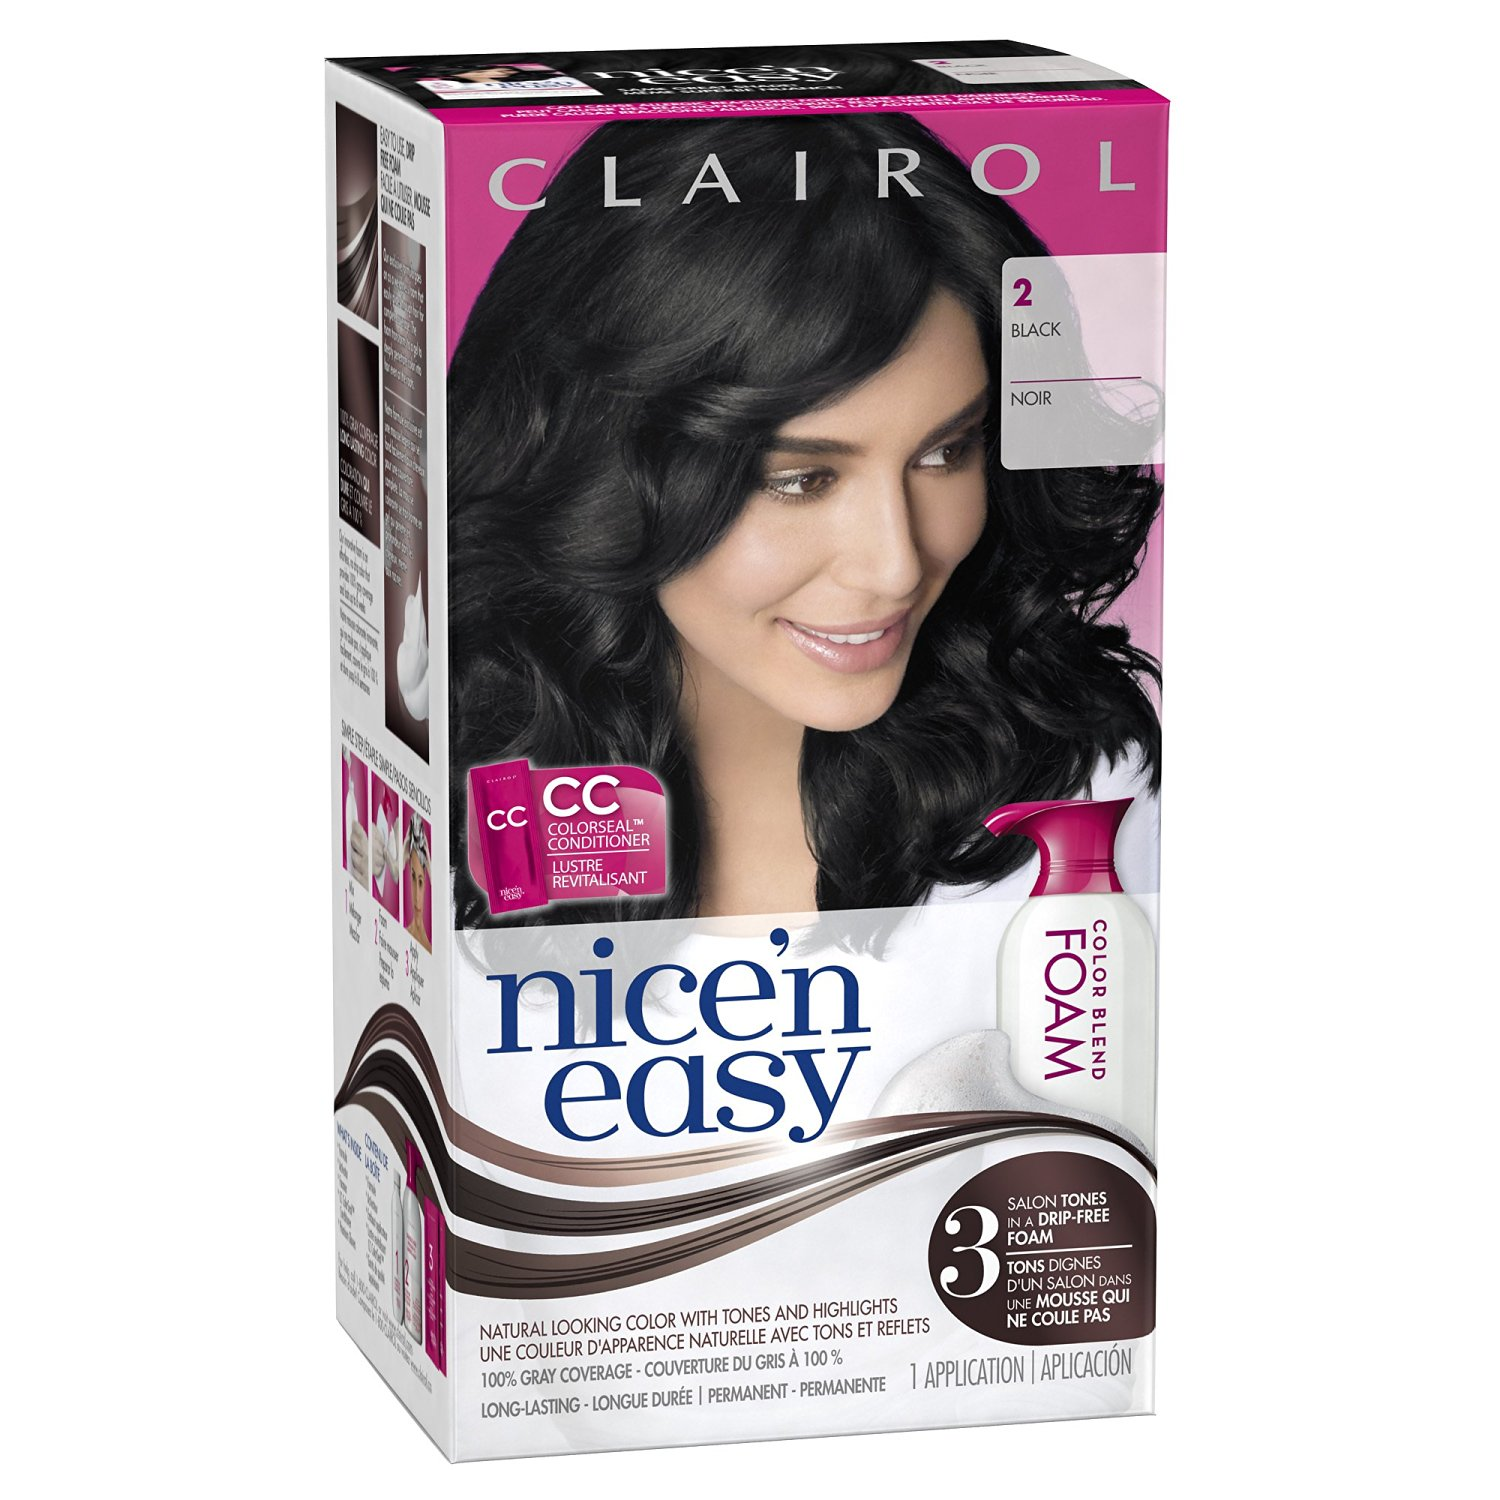 Clairol Hydrience Brand Topsimages